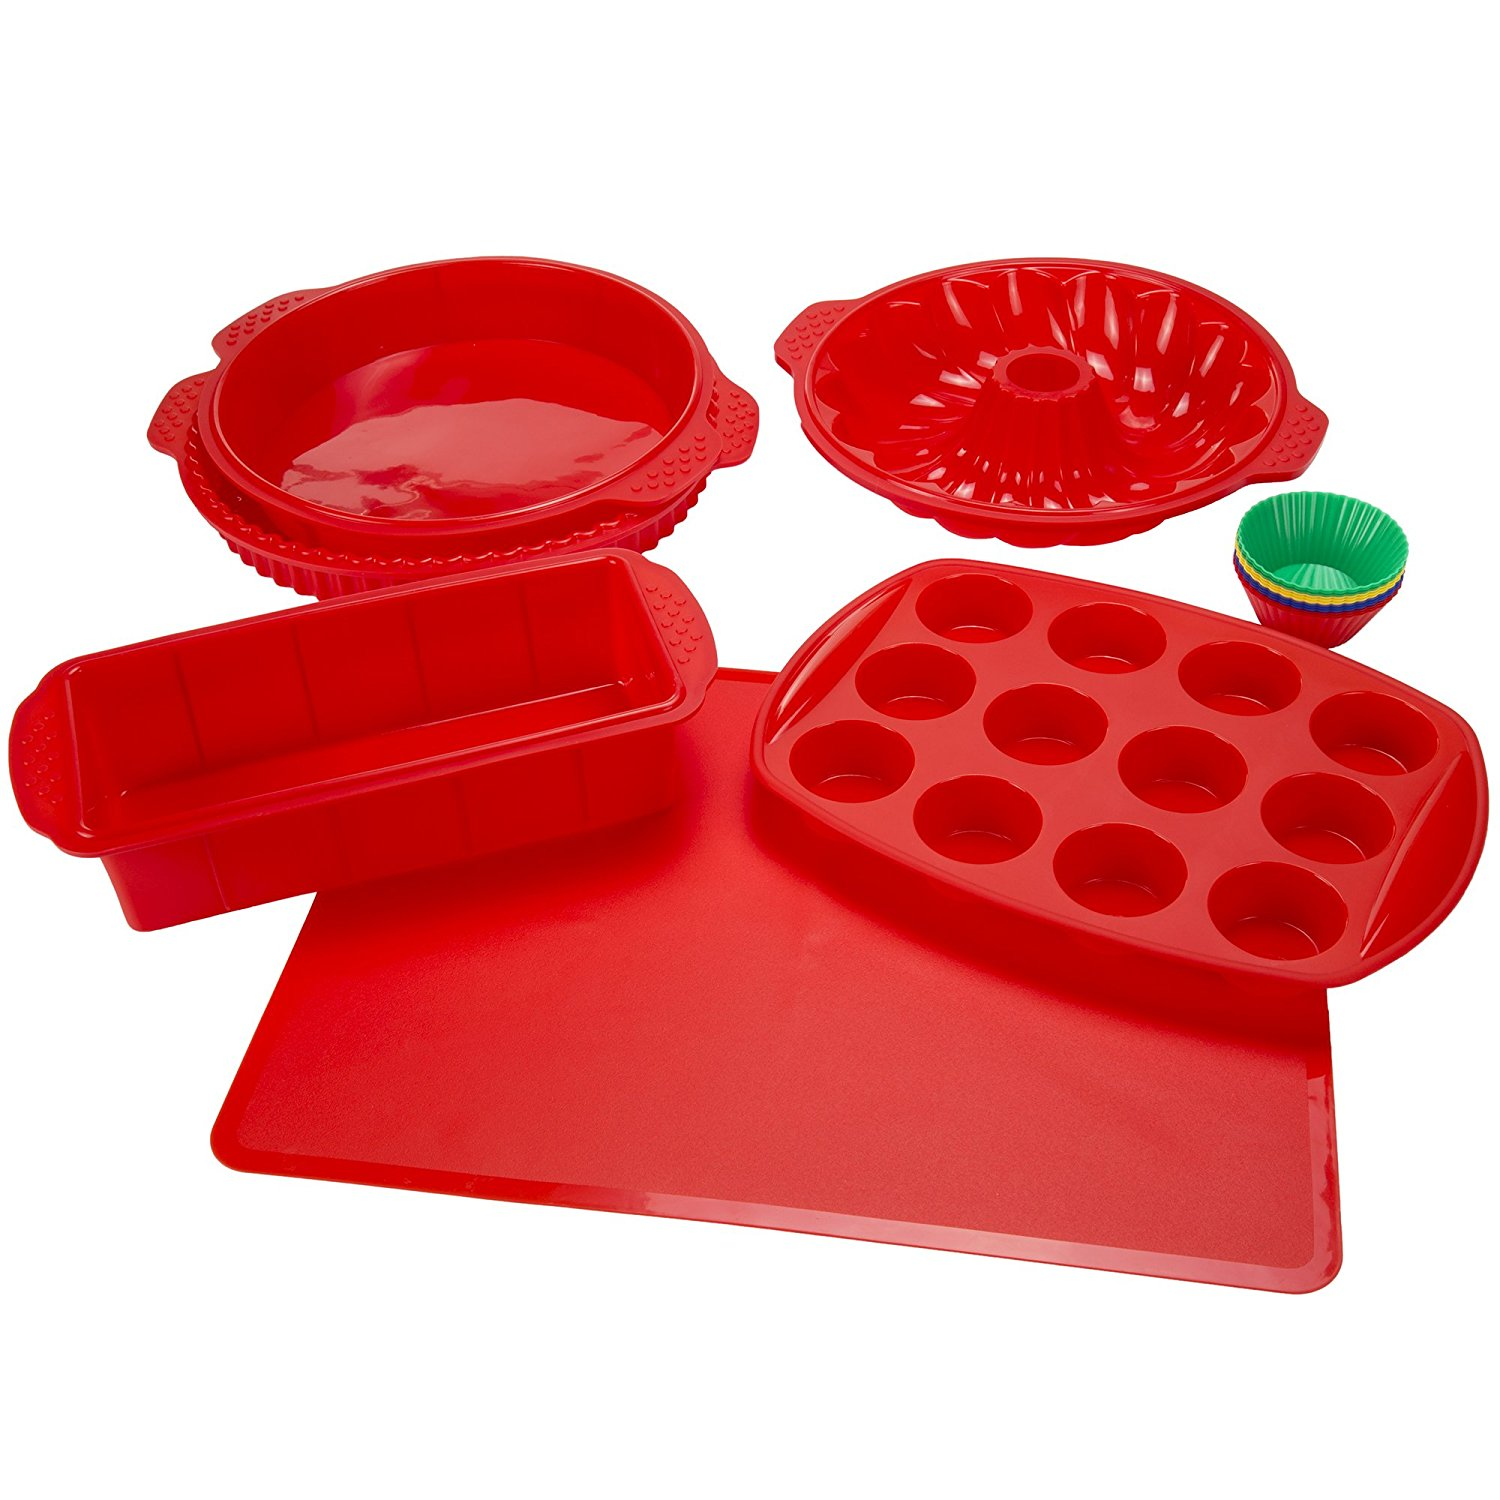 Silicone Baking Dishes